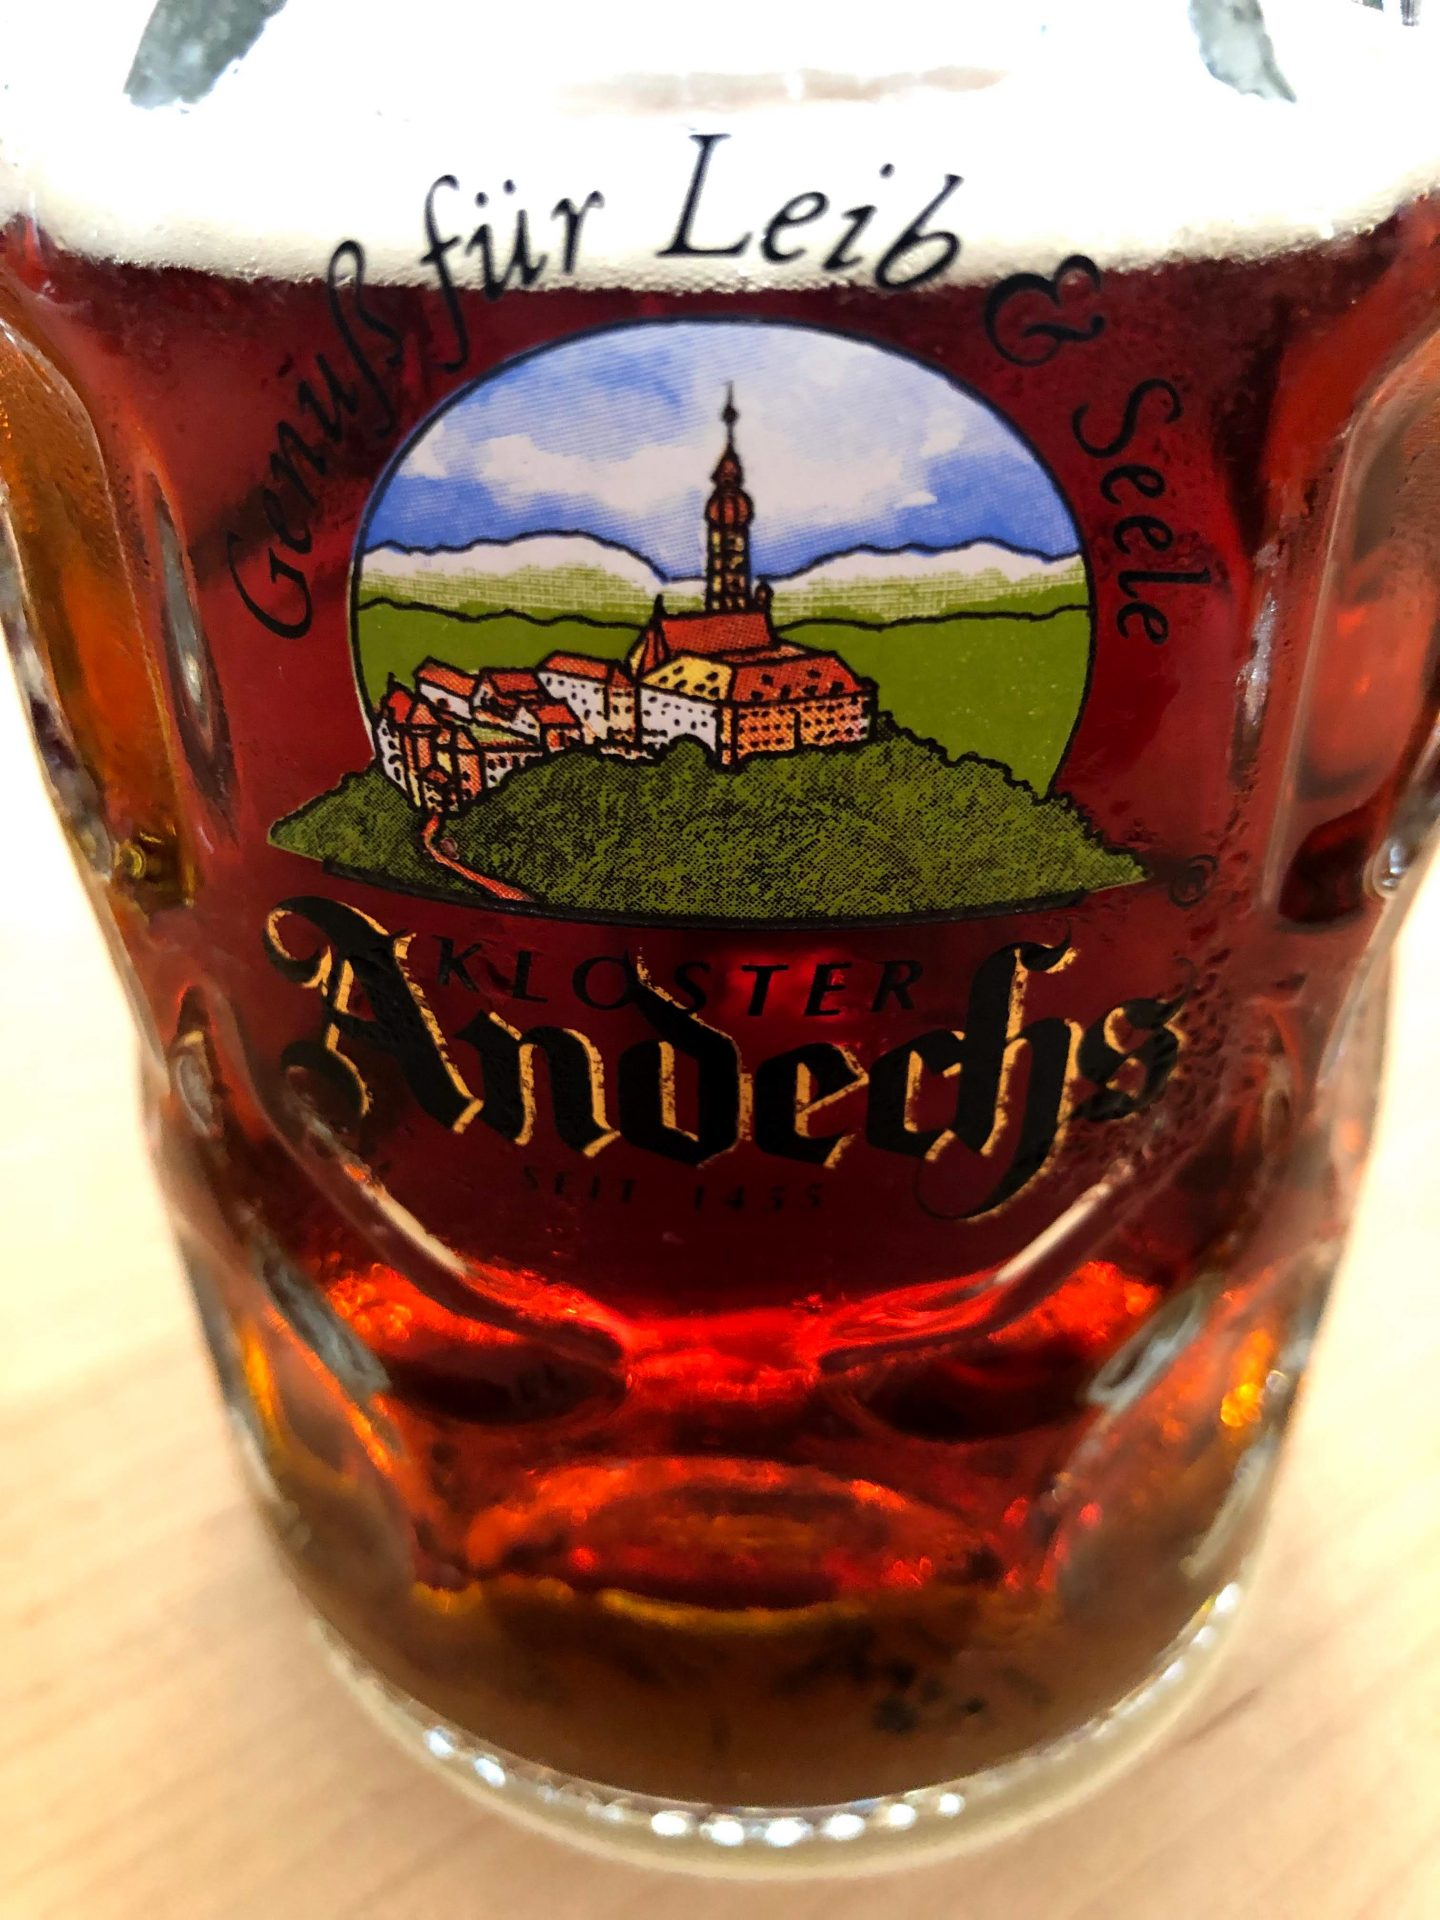 Close up of a glass mug of amber colored beer with the logo Andechs showing